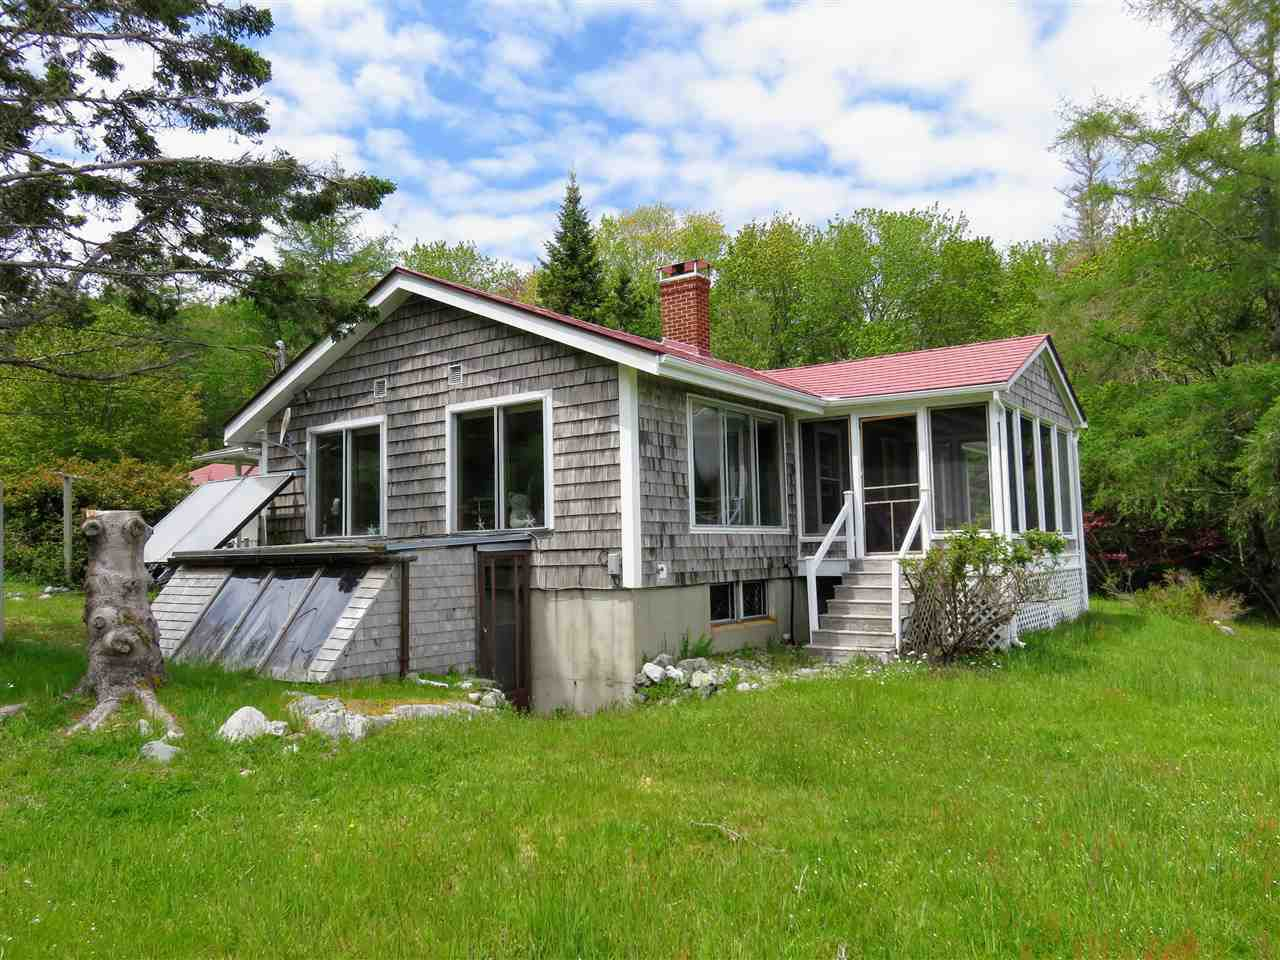 Main Photo: 1931 SHORE Road in Carleton Village: 407-Shelburne County Residential for sale (South Shore)  : MLS®# 201915322